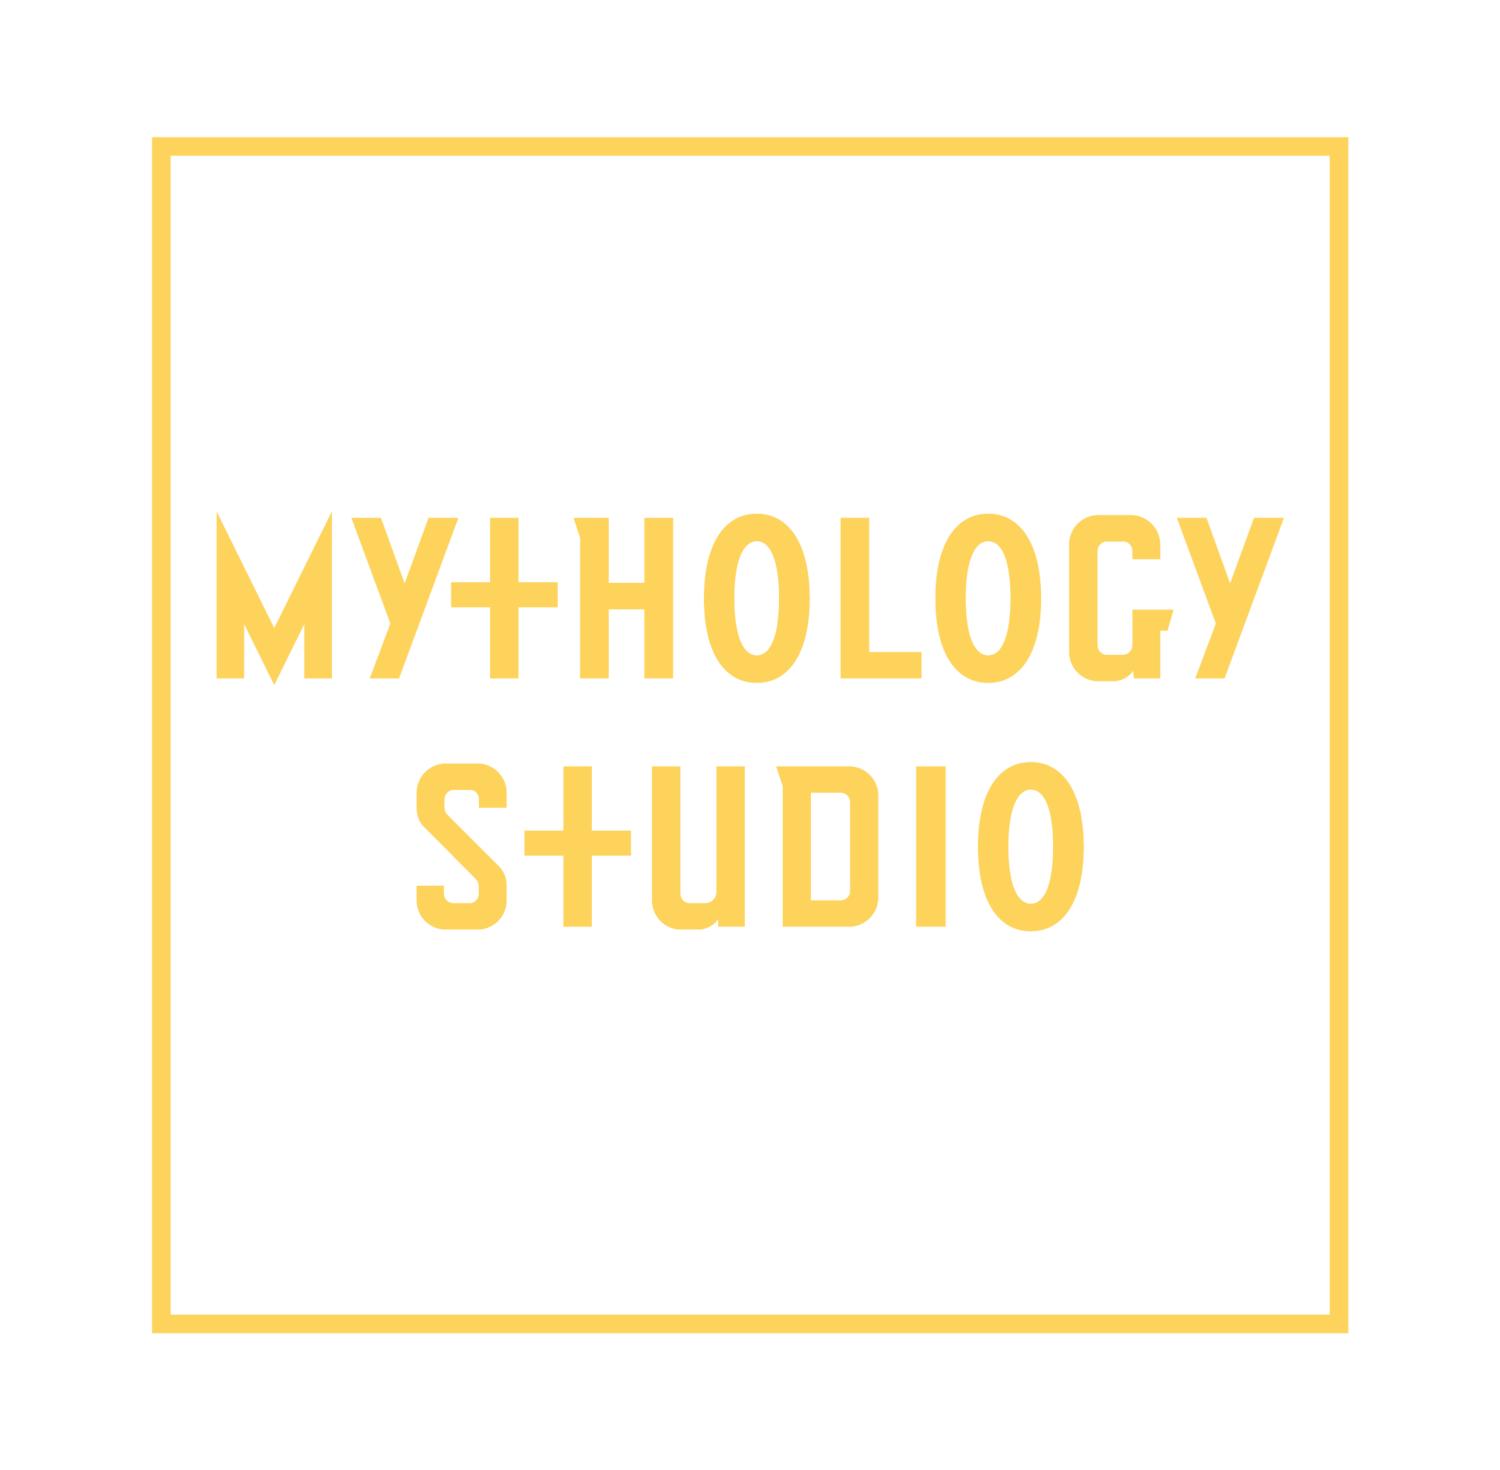 Mythology Studio